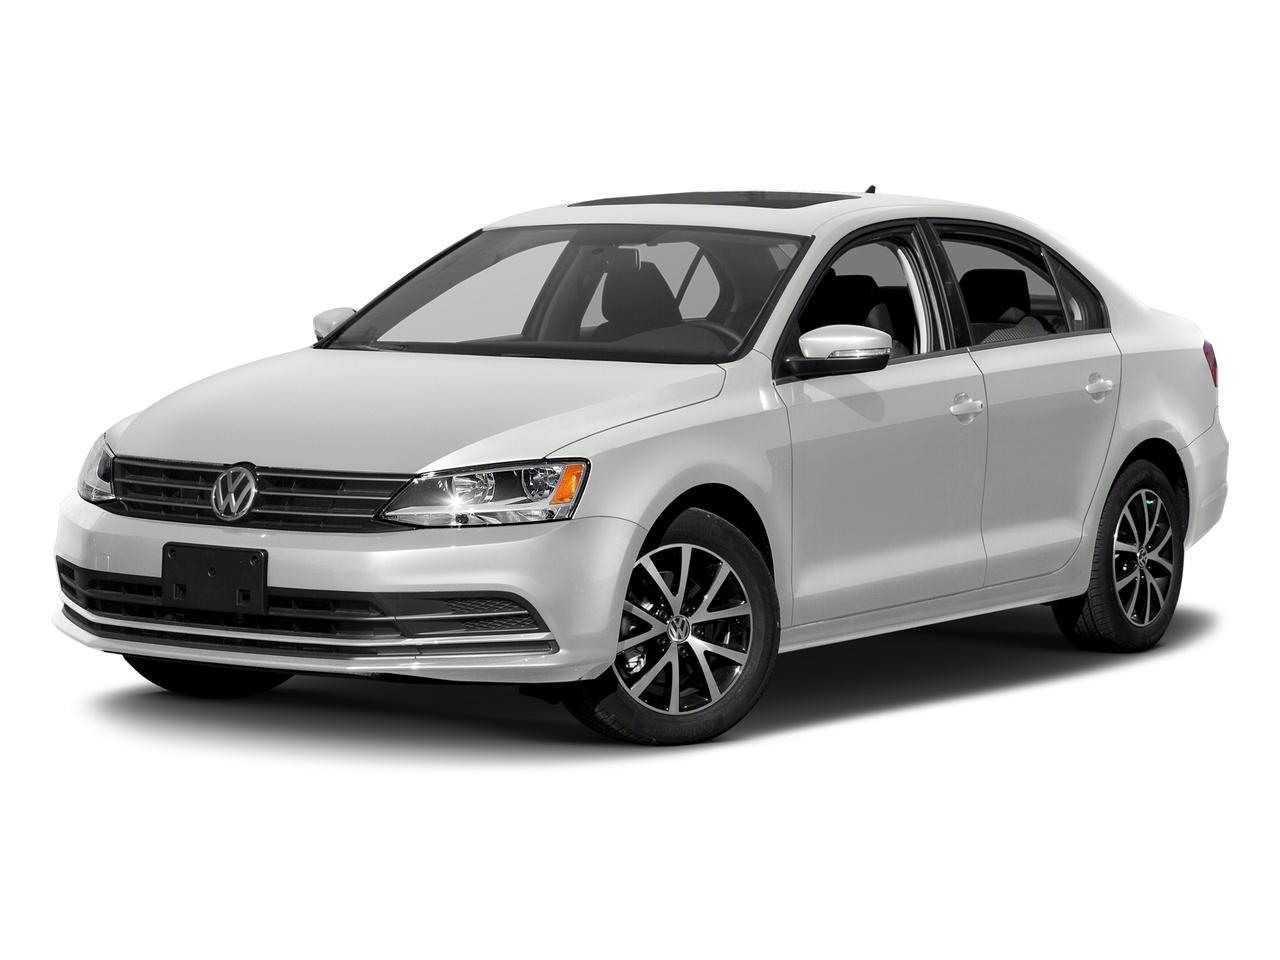 2016 Volkswagen Jetta Sedan Vehicle Photo in Joliet, IL 60586